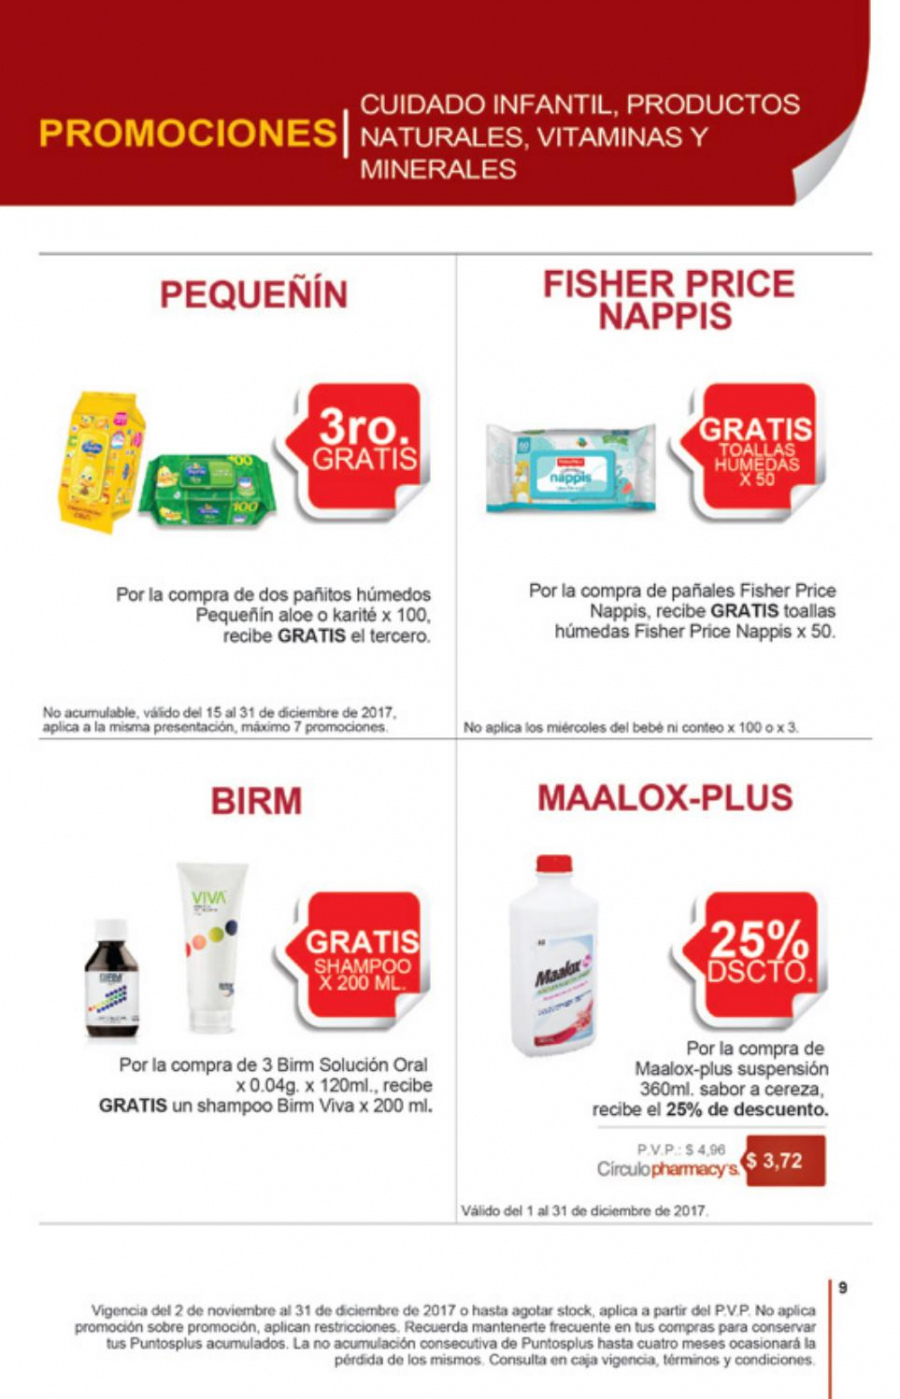 Folleto actual Pharmacy's - 2.11.2017 - 31.12.2017 - Ventas - bebé, cereza, toalla, pañales, fisher price, shampoo, pañitos húmedos, suspensión. Página 8.